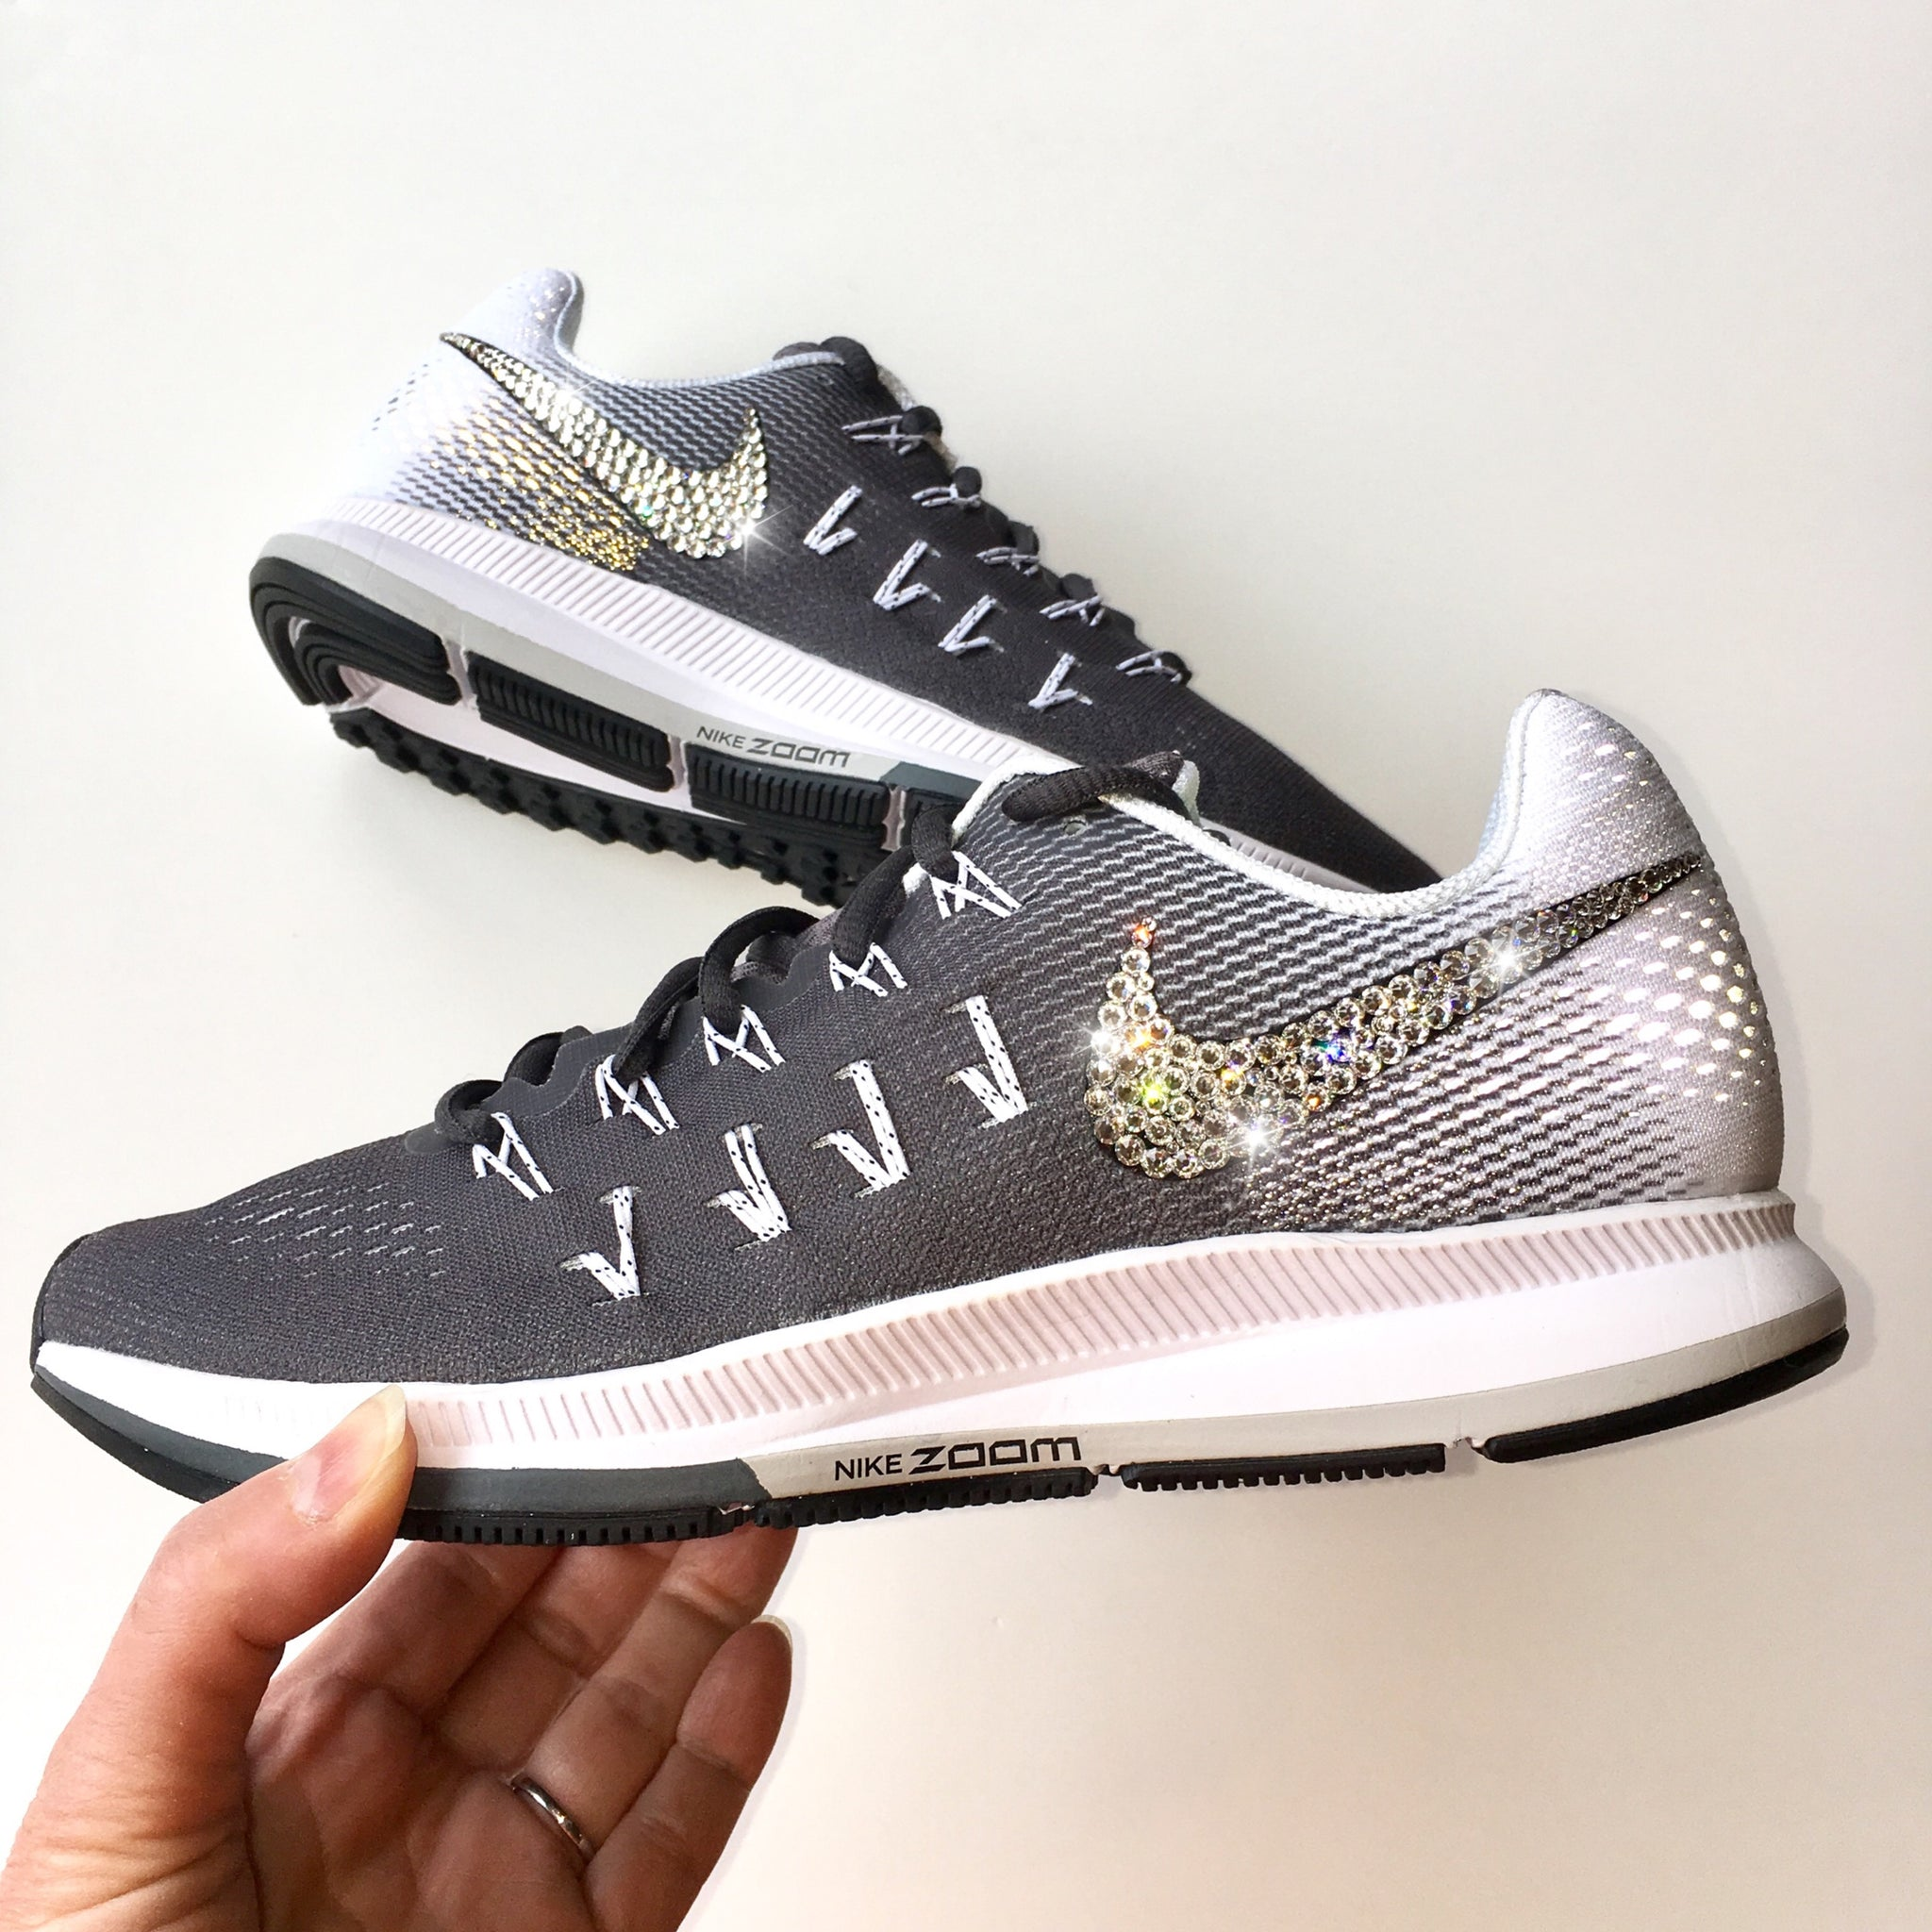 2800bf581c85 ... Bling Nike Air Zoom Pegasus 33 Shoes with Swarovski Crystals   Dark  Grey   Bedazzled w ...